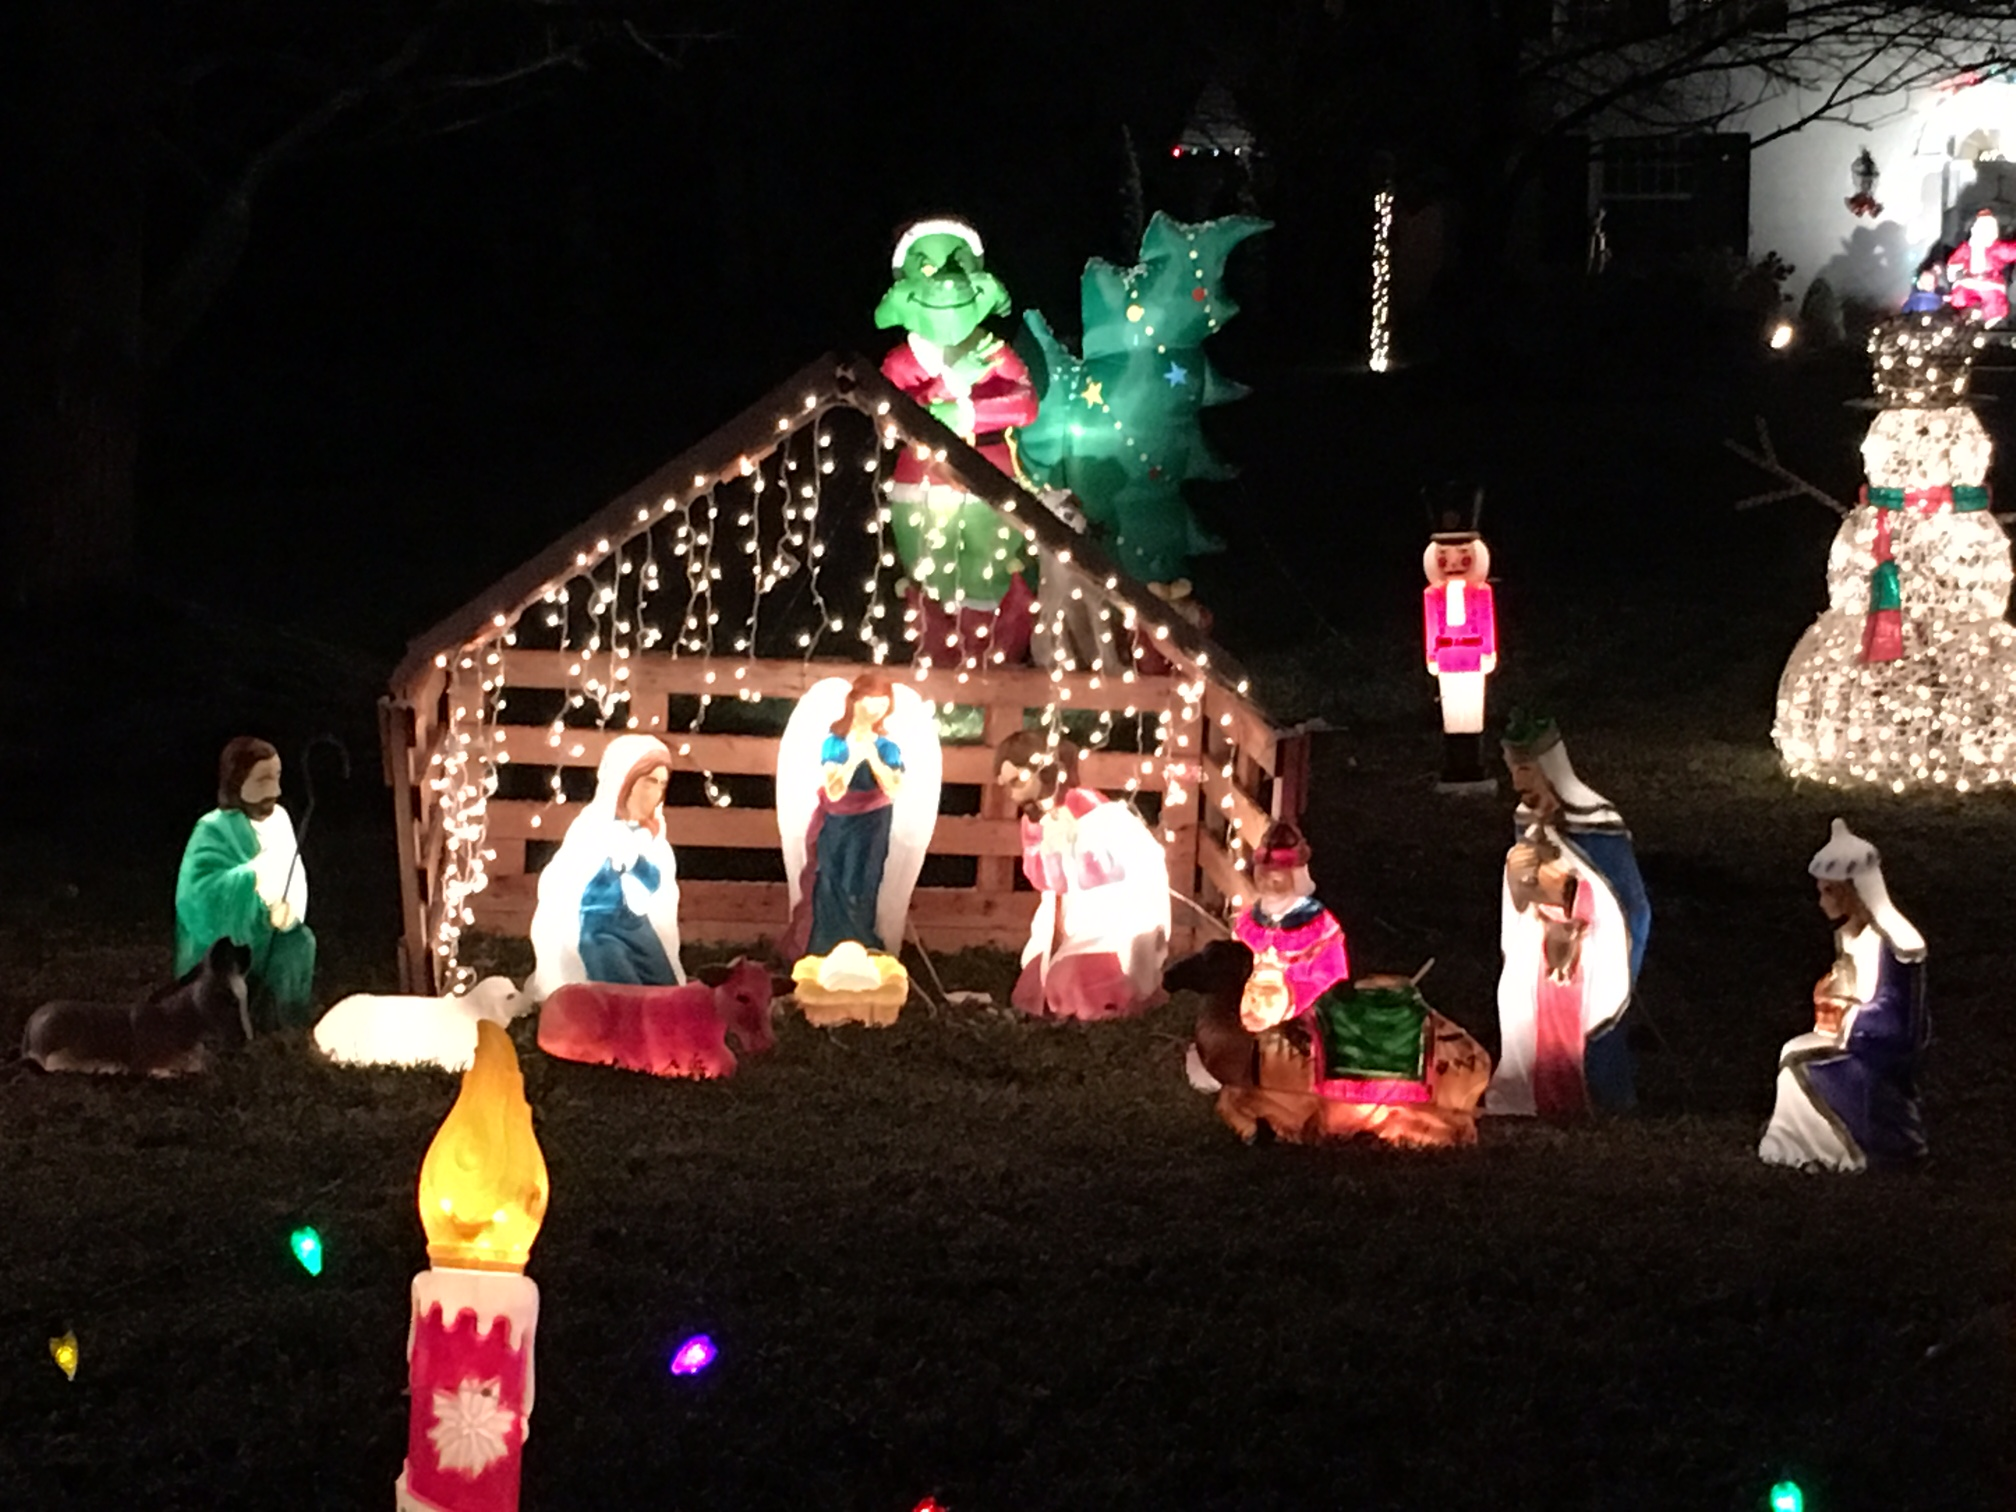 2016 Best Holiday Decorations Contest Winners